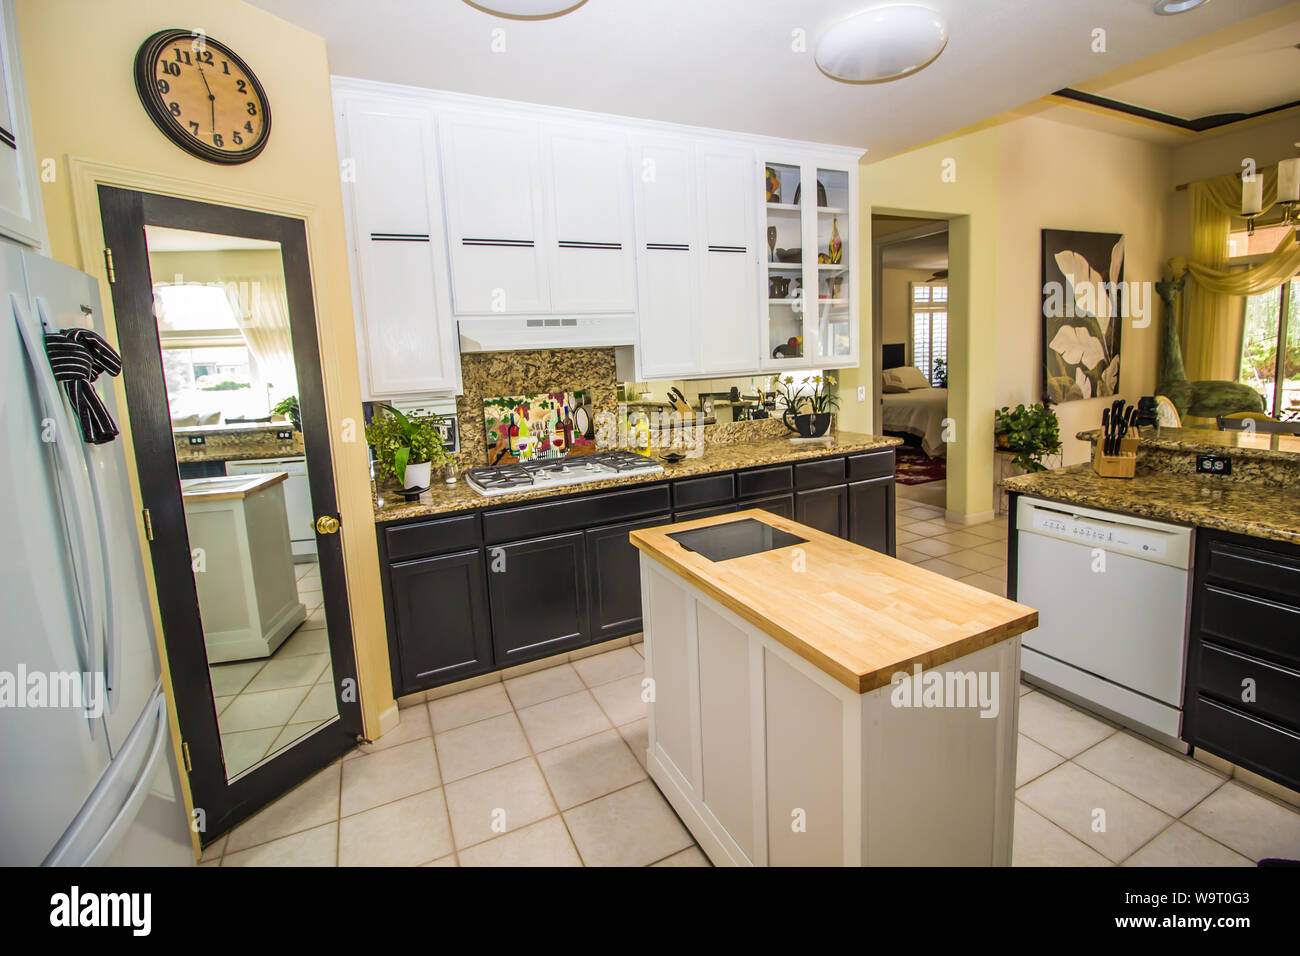 Modern Kitchen With Pantry Granite Counters And Butcher Block Island Stock Photo Alamy